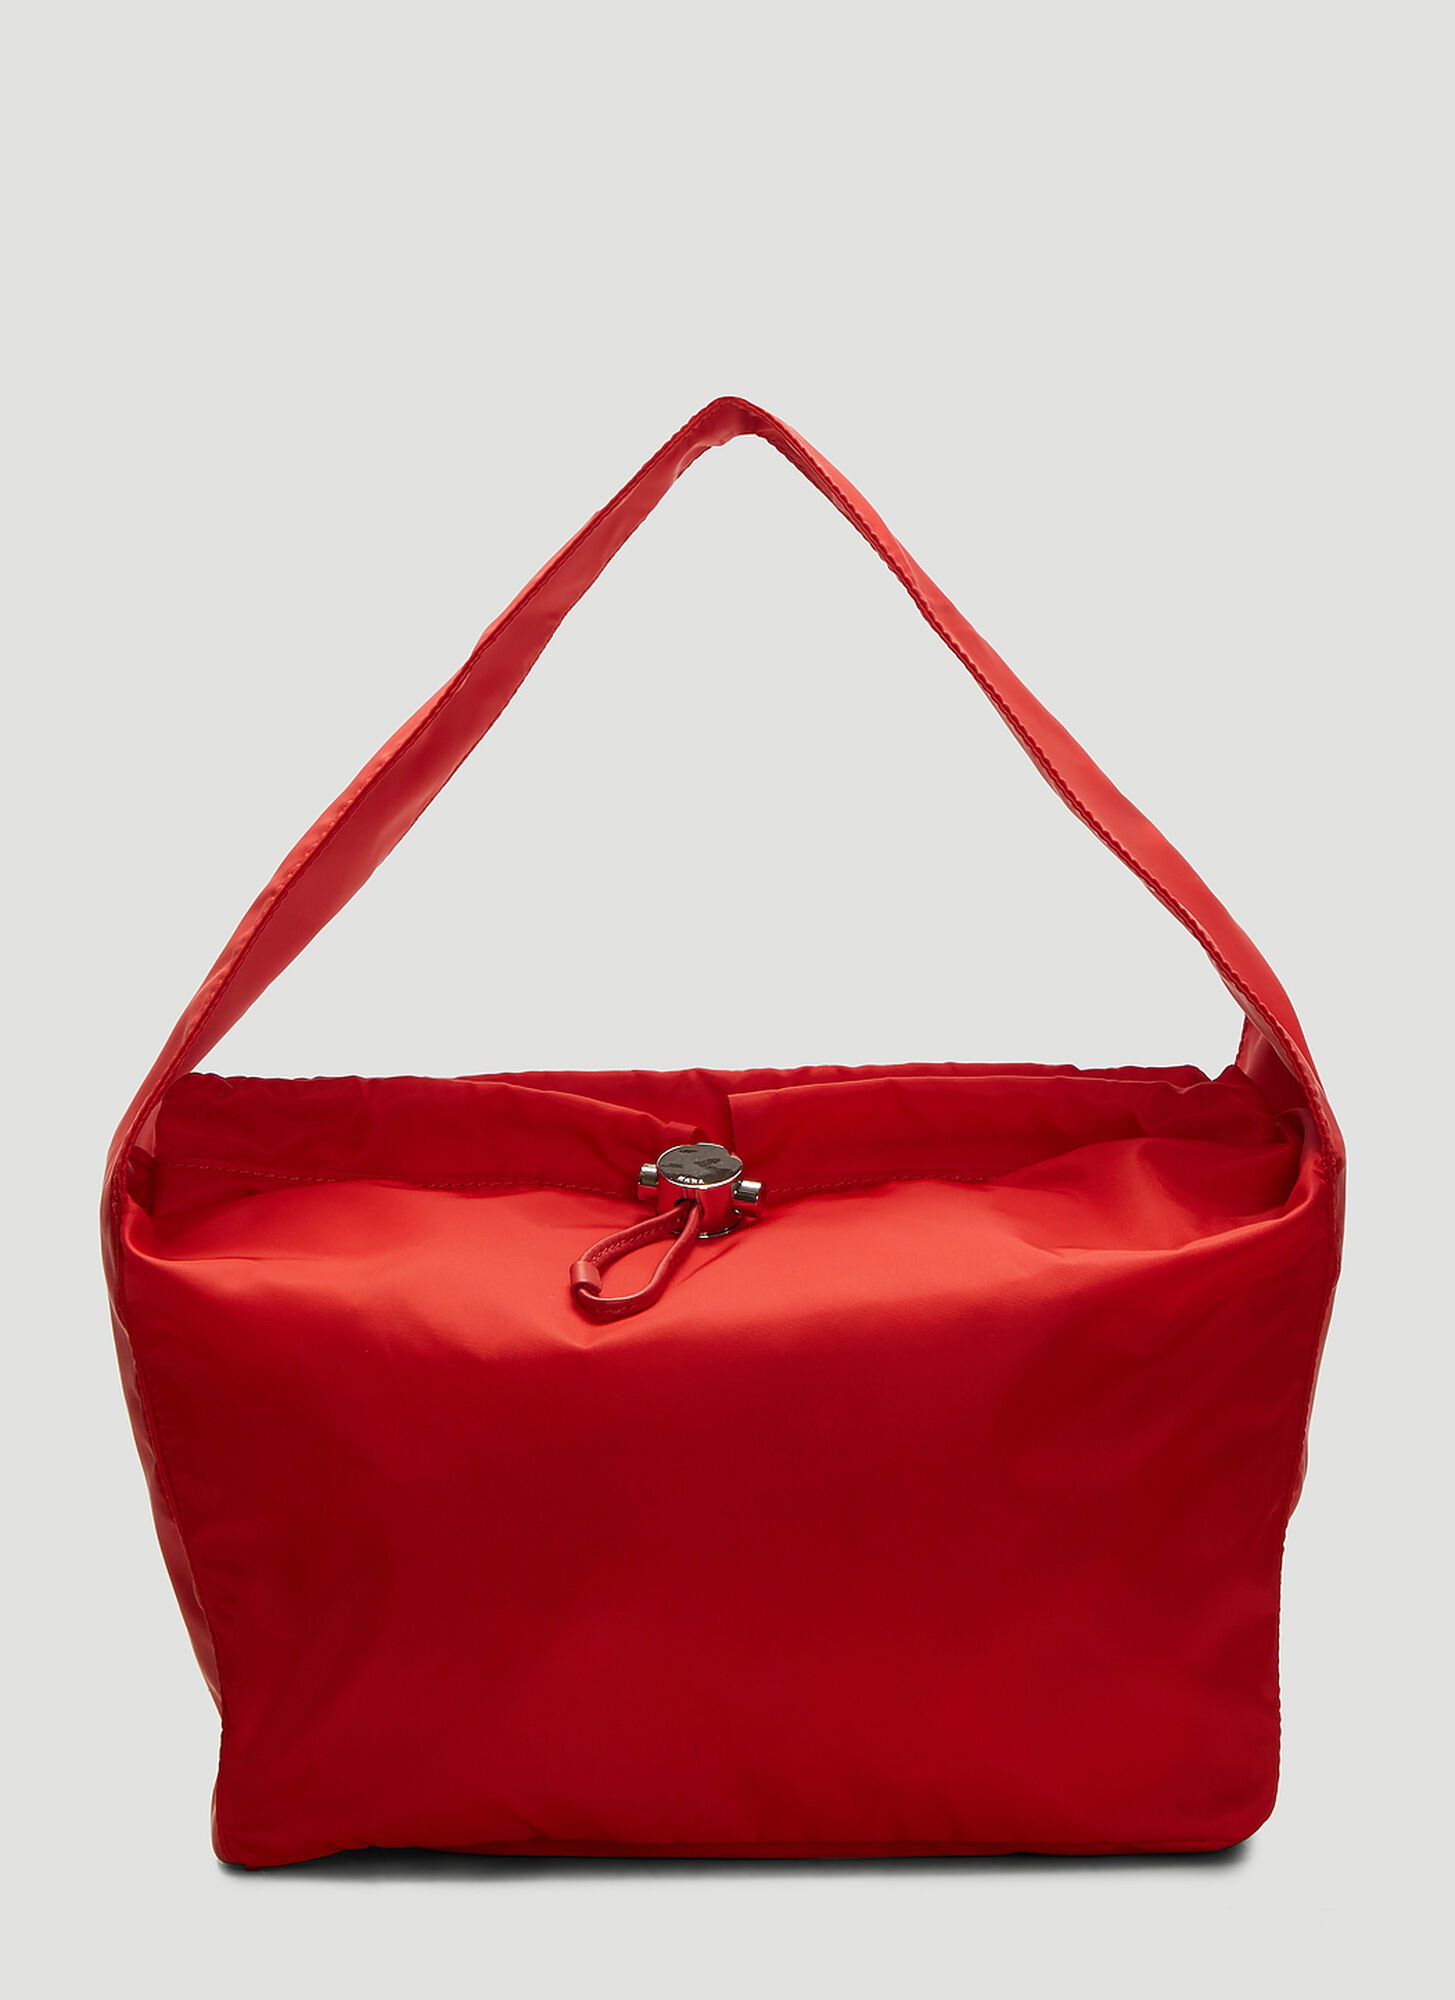 Kara Medium Cloud Bag in Red